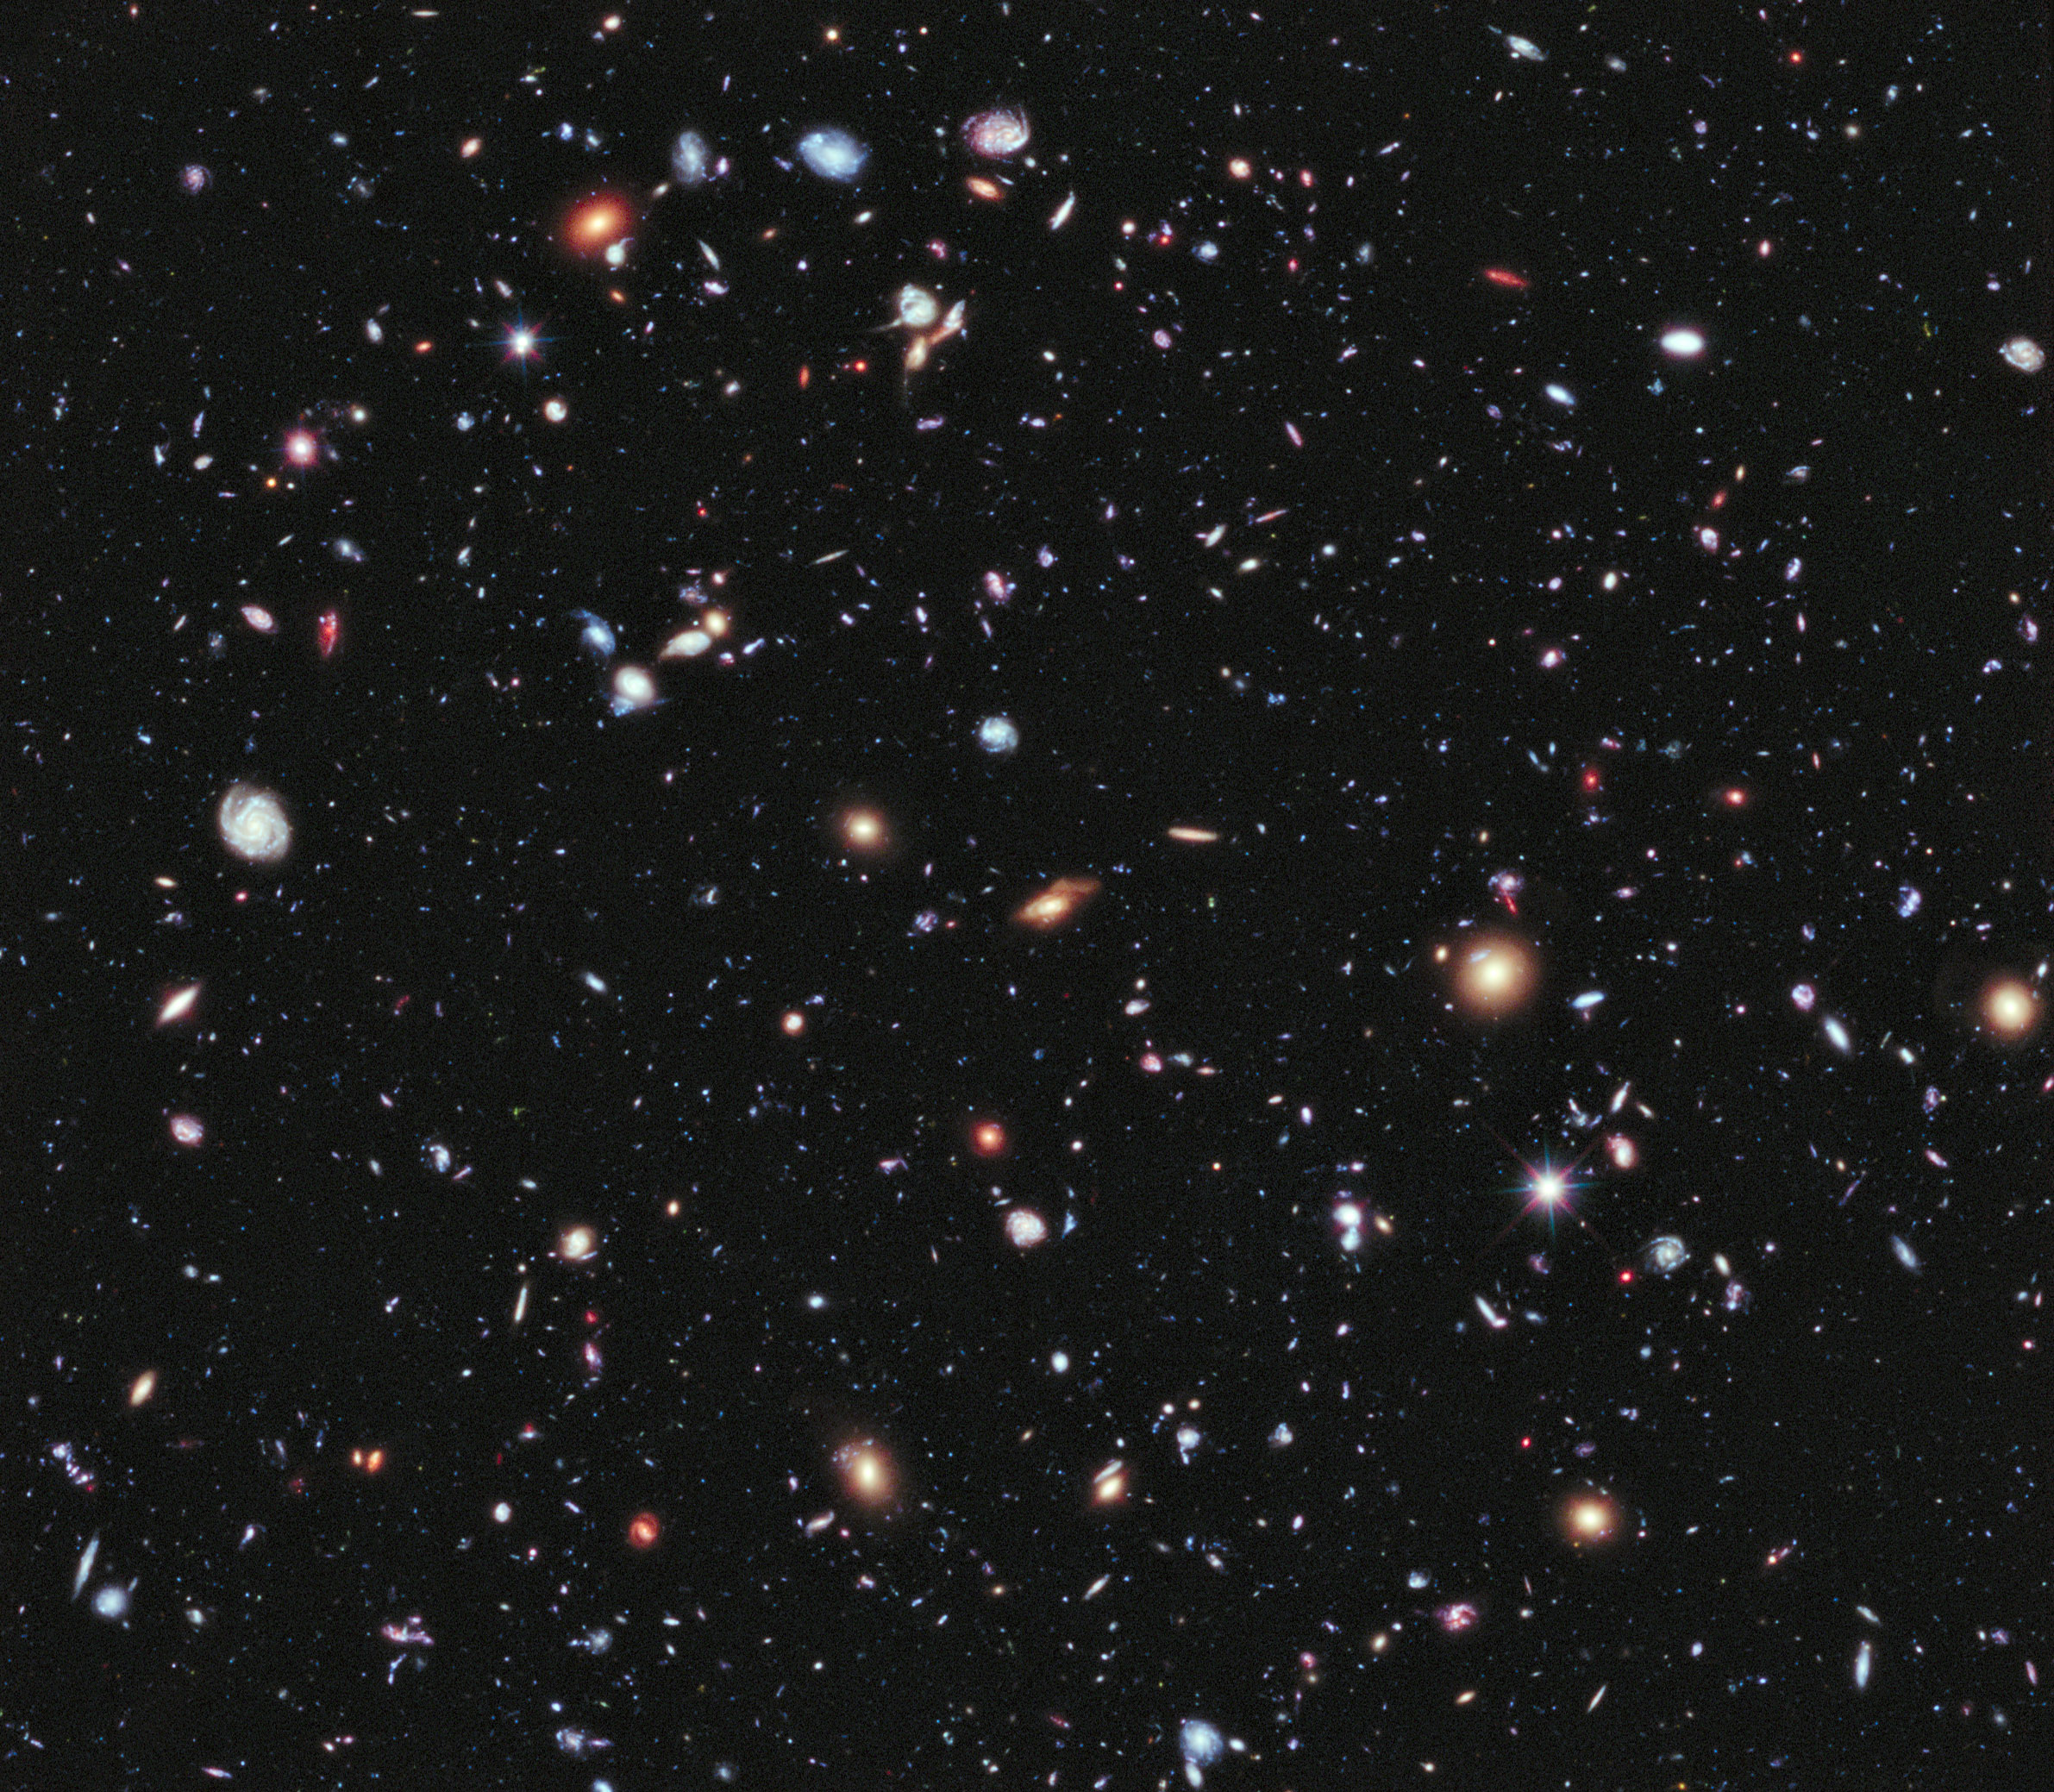 This Hubble extreme deep field image shows many galaxies outside the Milky Way.